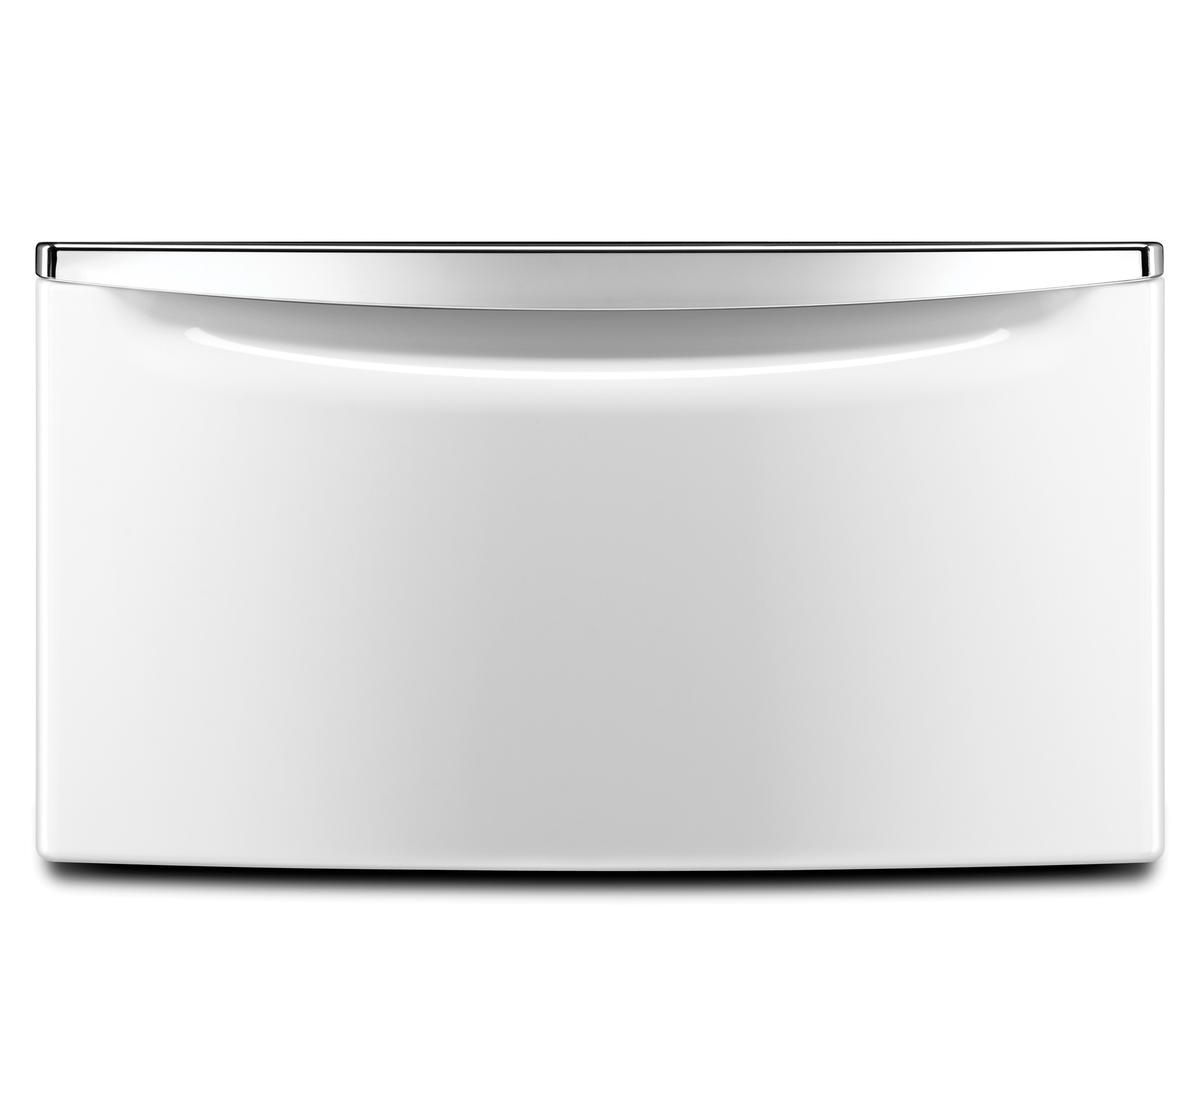 Picture of WHIRLPOOL LAUNDRY STORAGE DRAWER